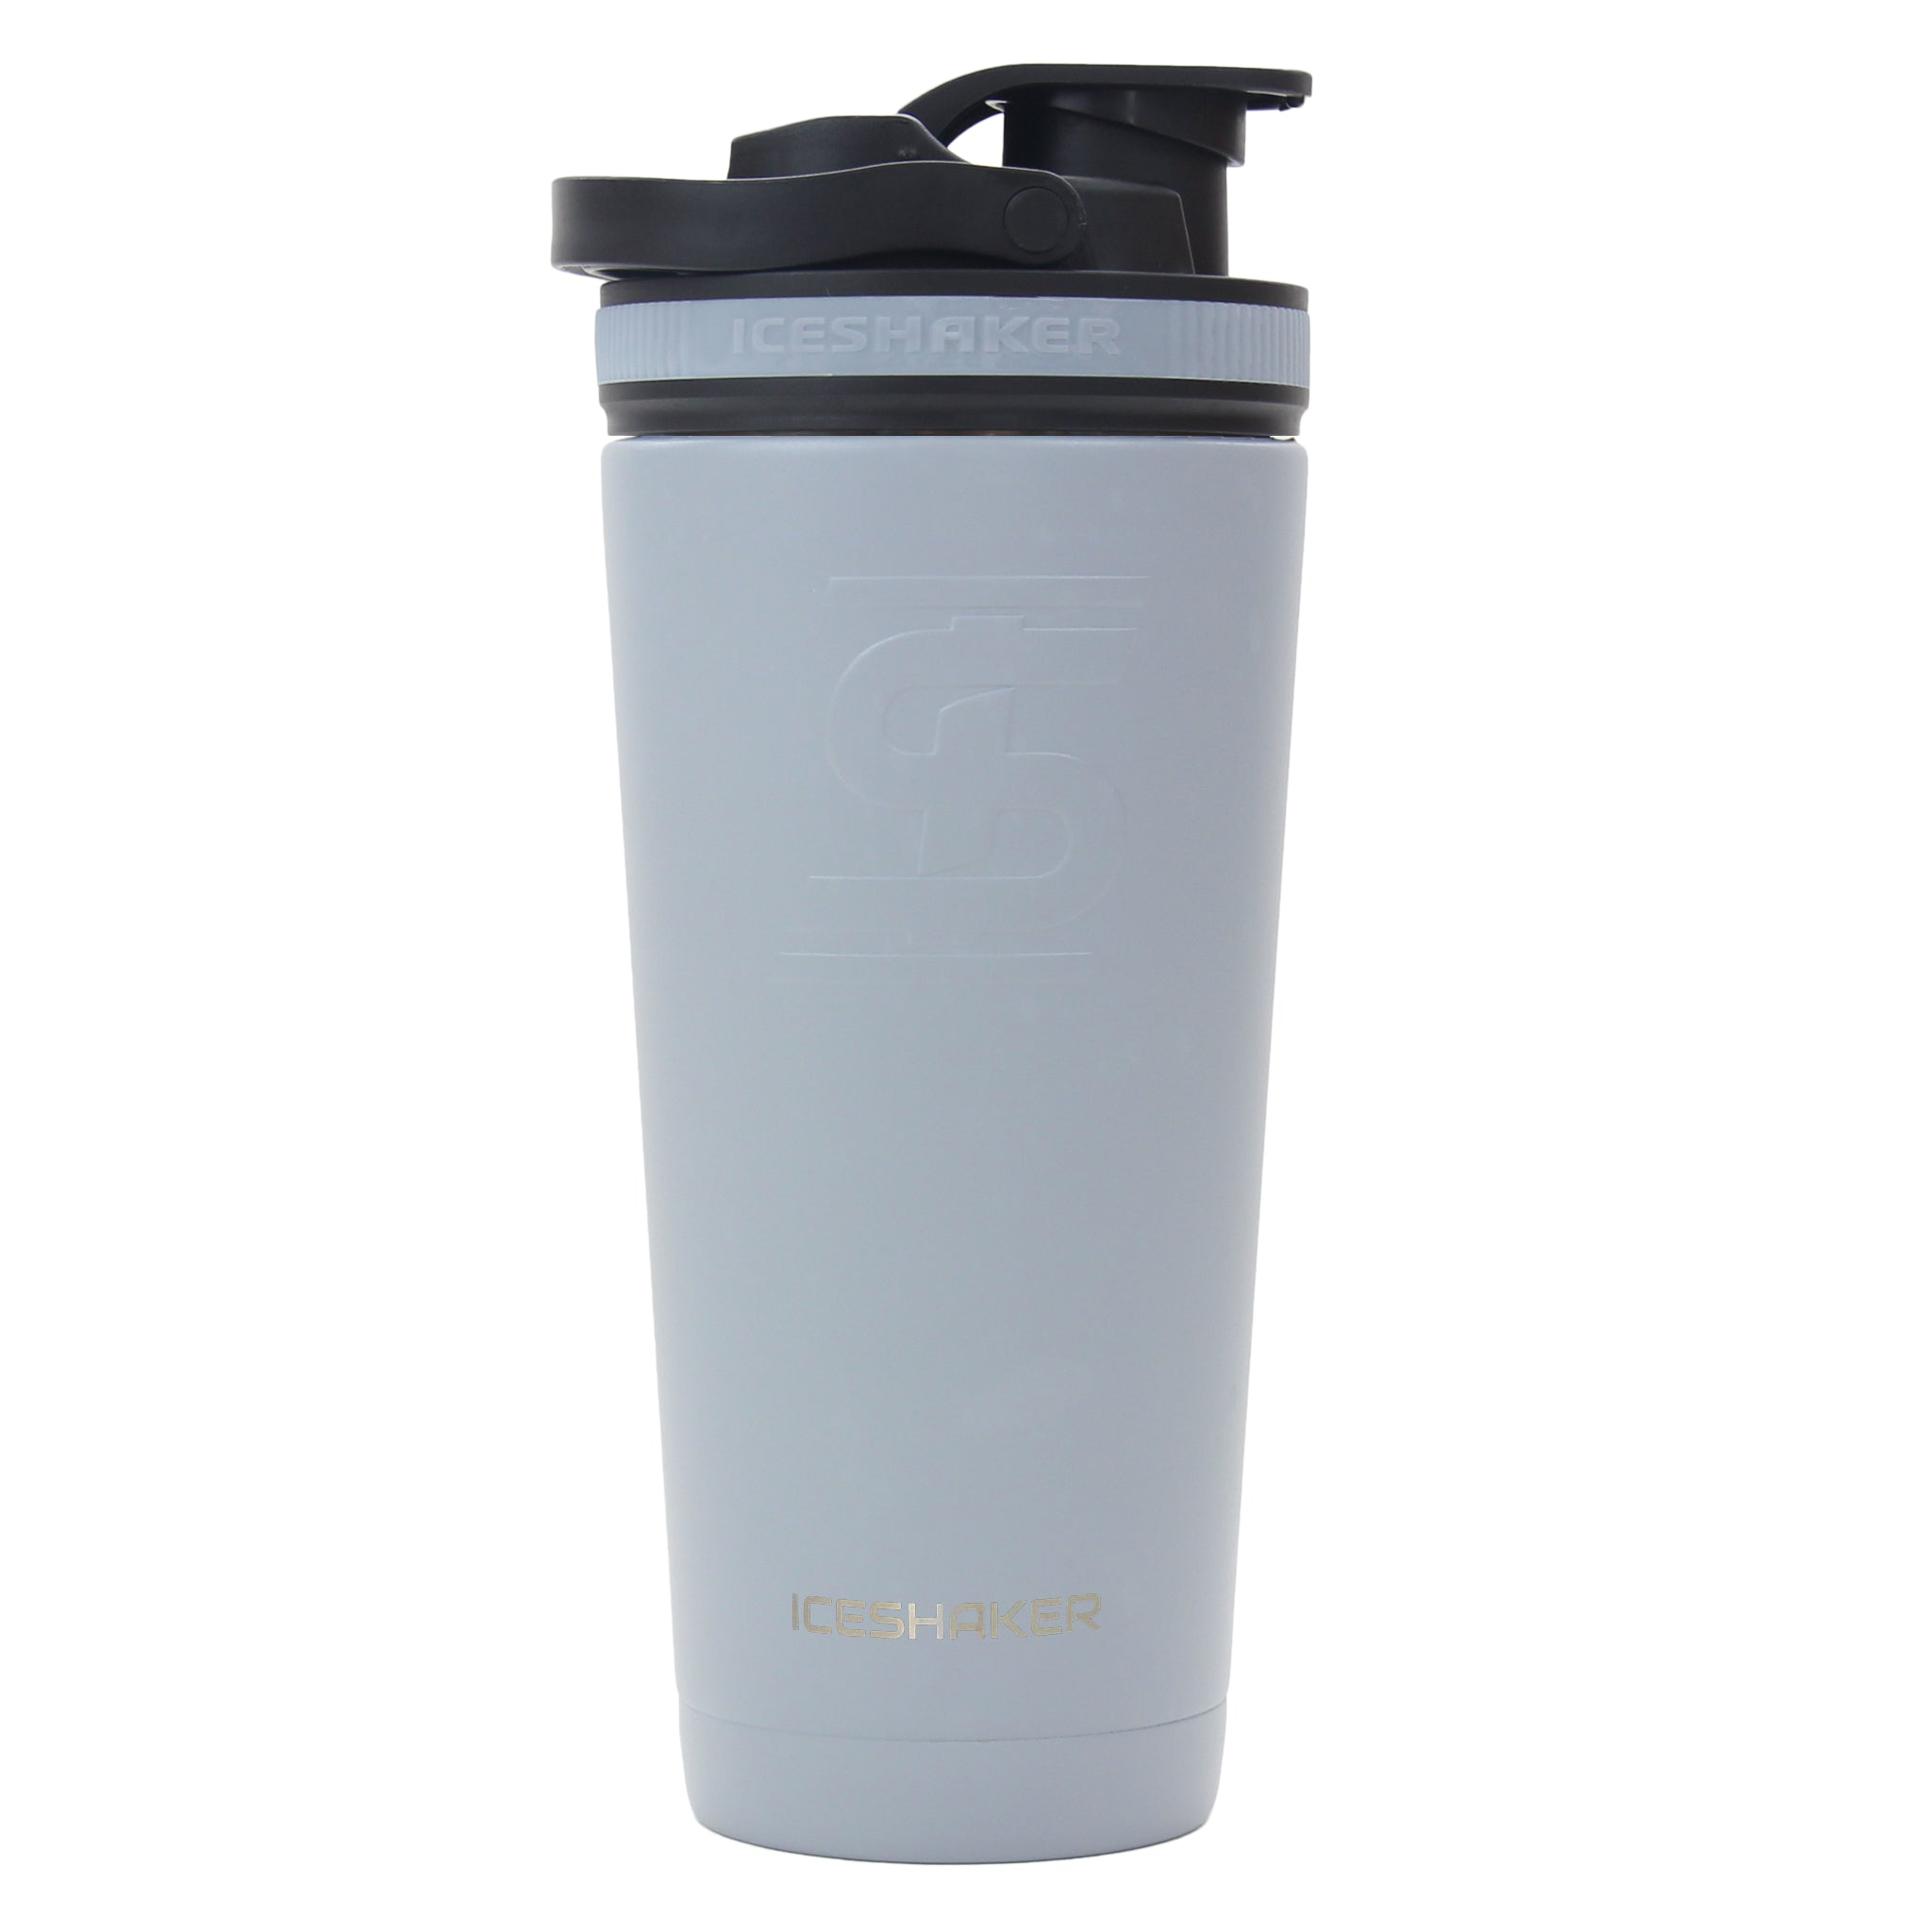 26oz Battleship Grey Ice Shaker